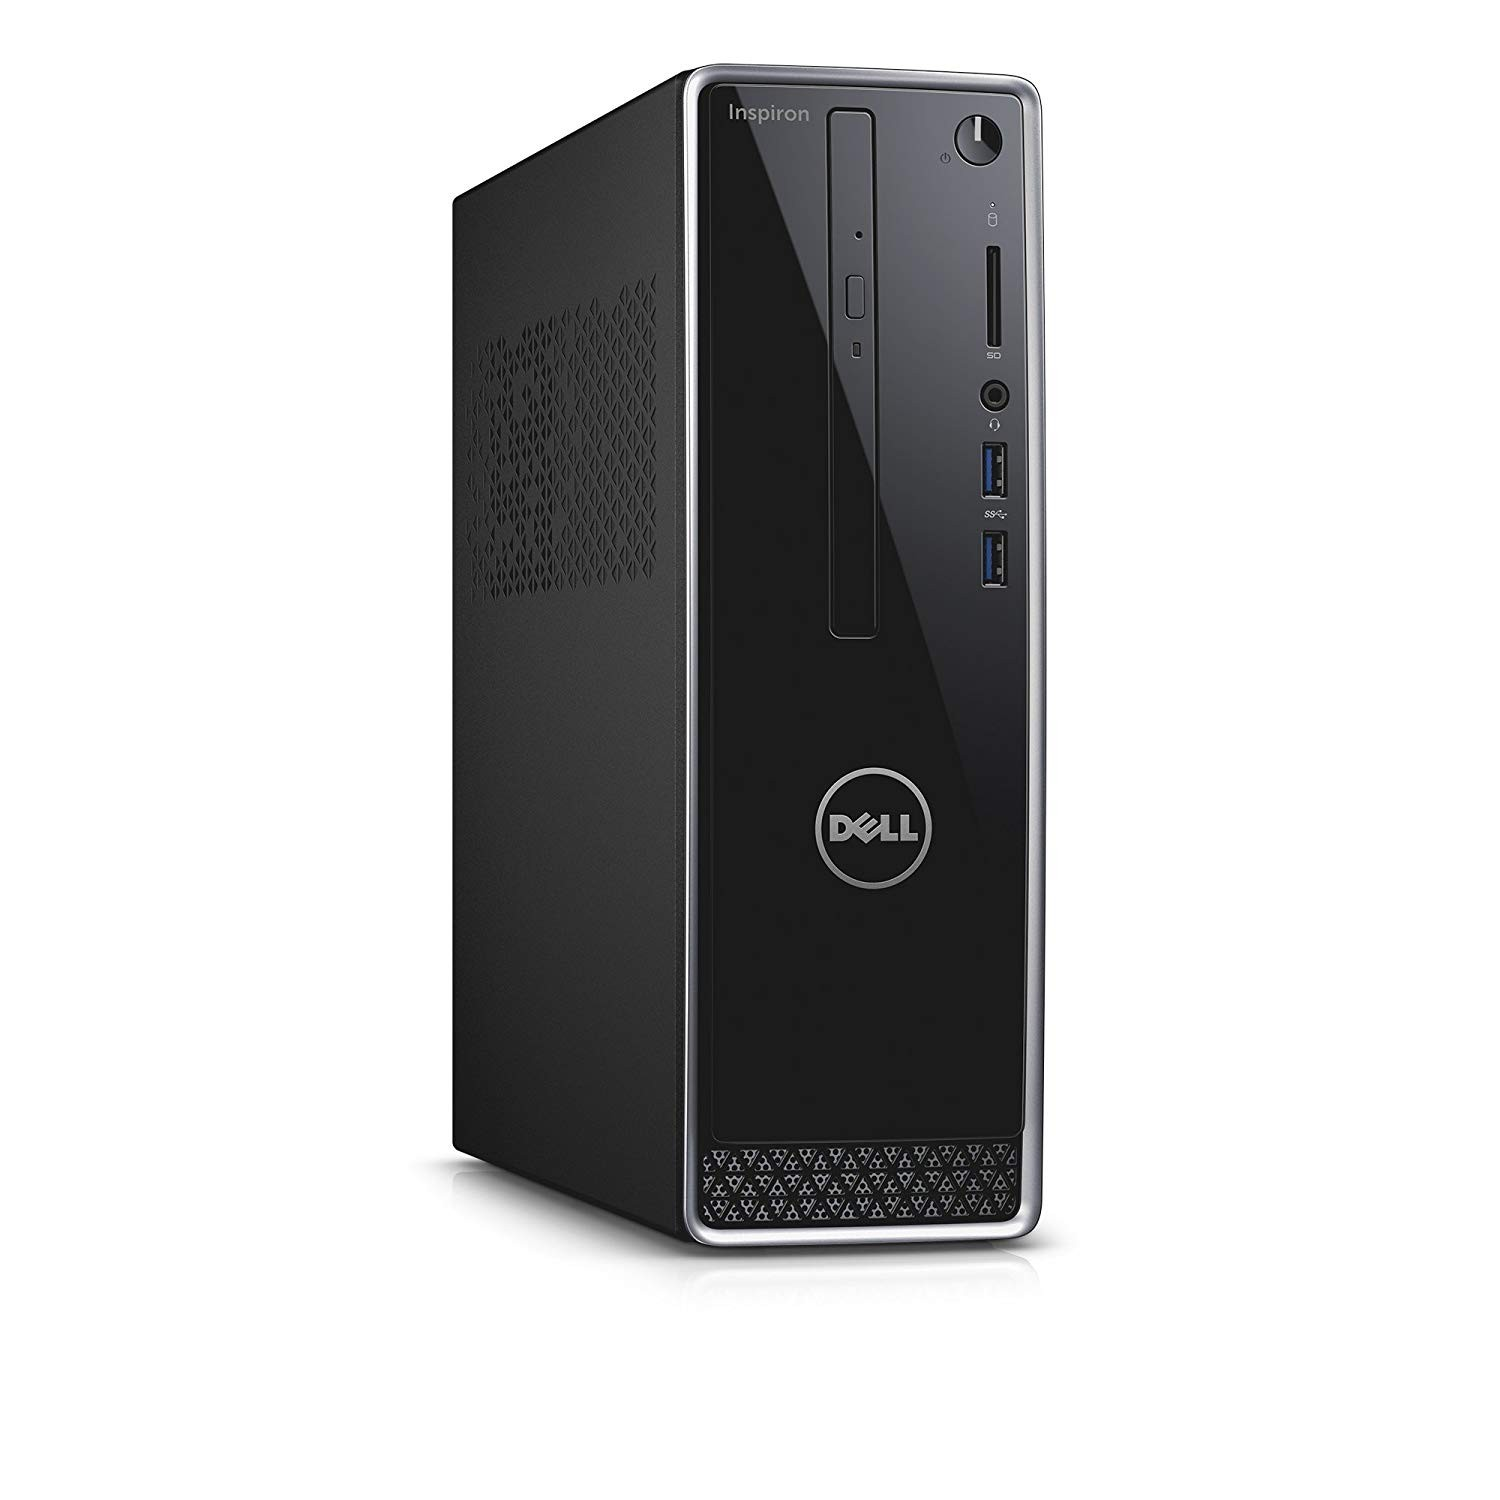 DELL REFURBISHED INSPIRON DT 3250/ 6th Gen Ci3-6100U/ 4GB/ 1TB/ INT/ NO OS/ Display Not Included